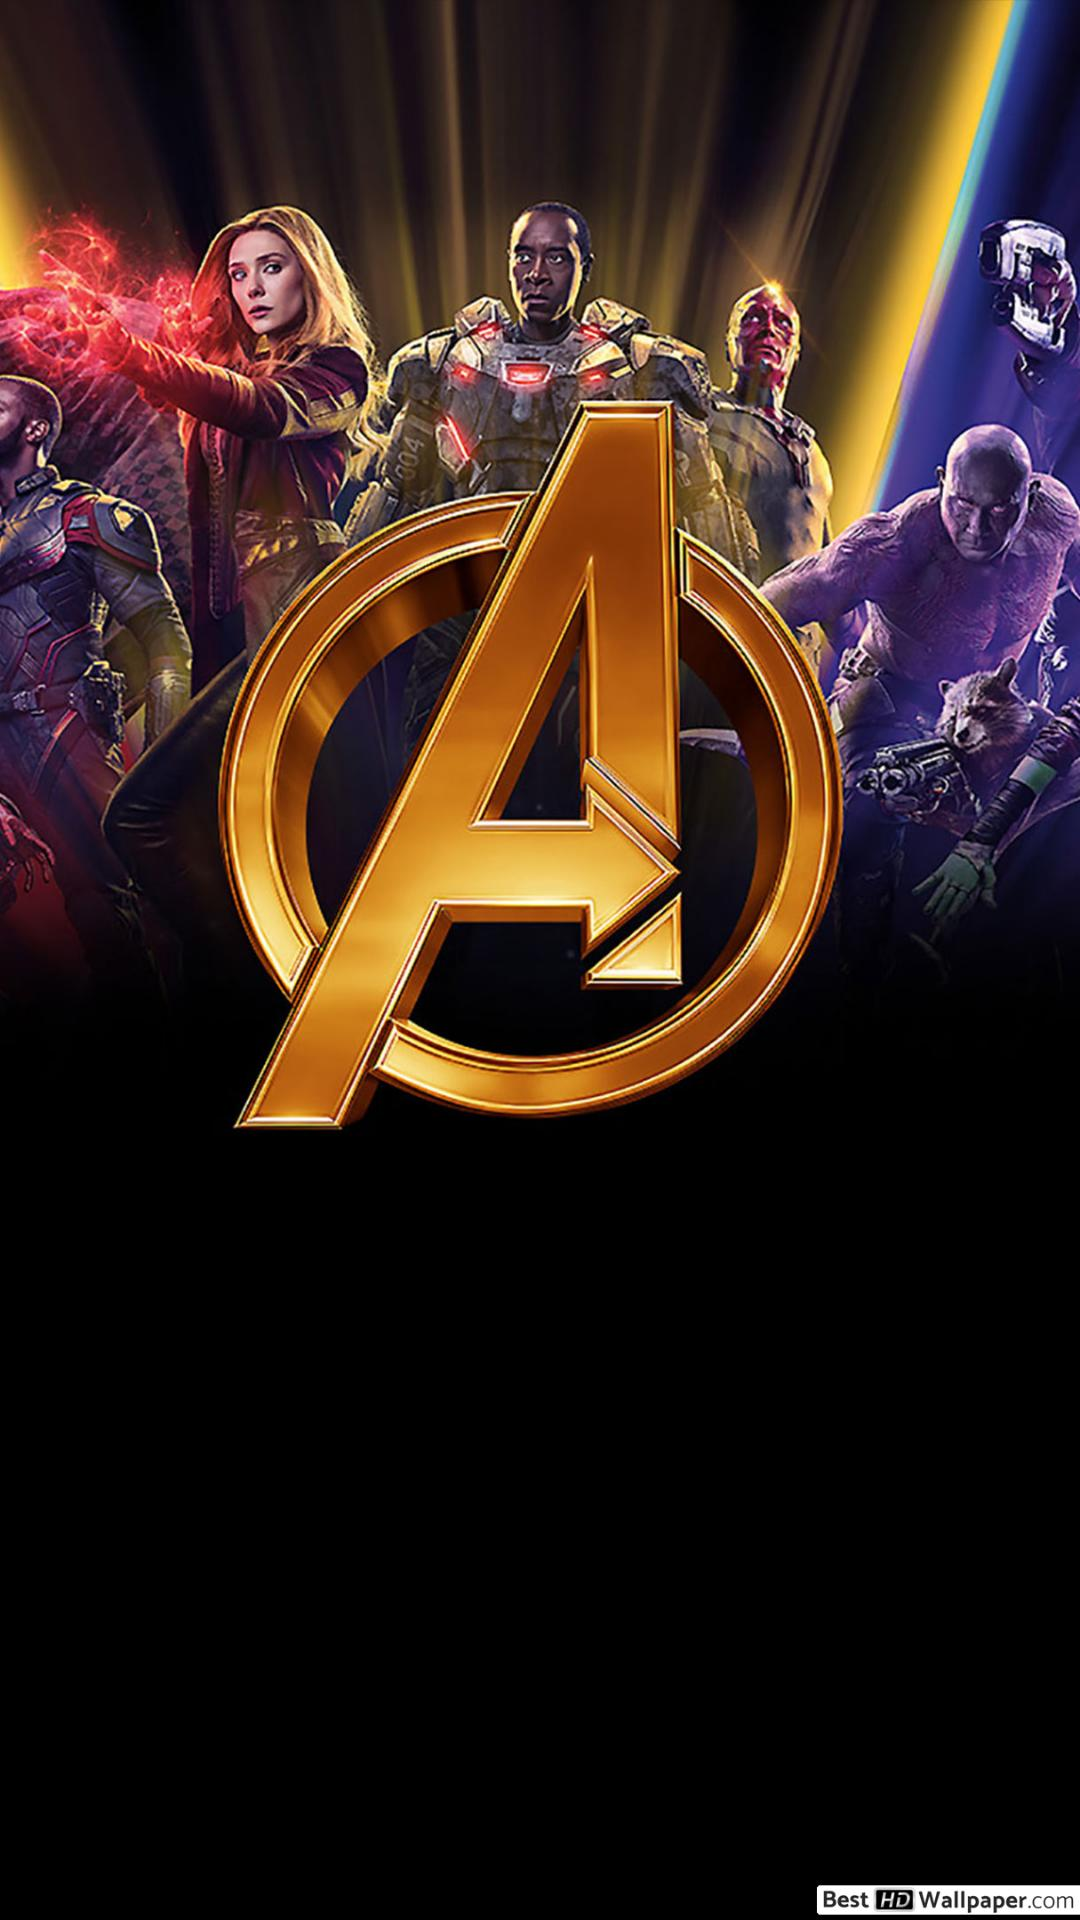 Apple Iphone 7 Plus 4k Avengers 551763 Hd Wallpaper